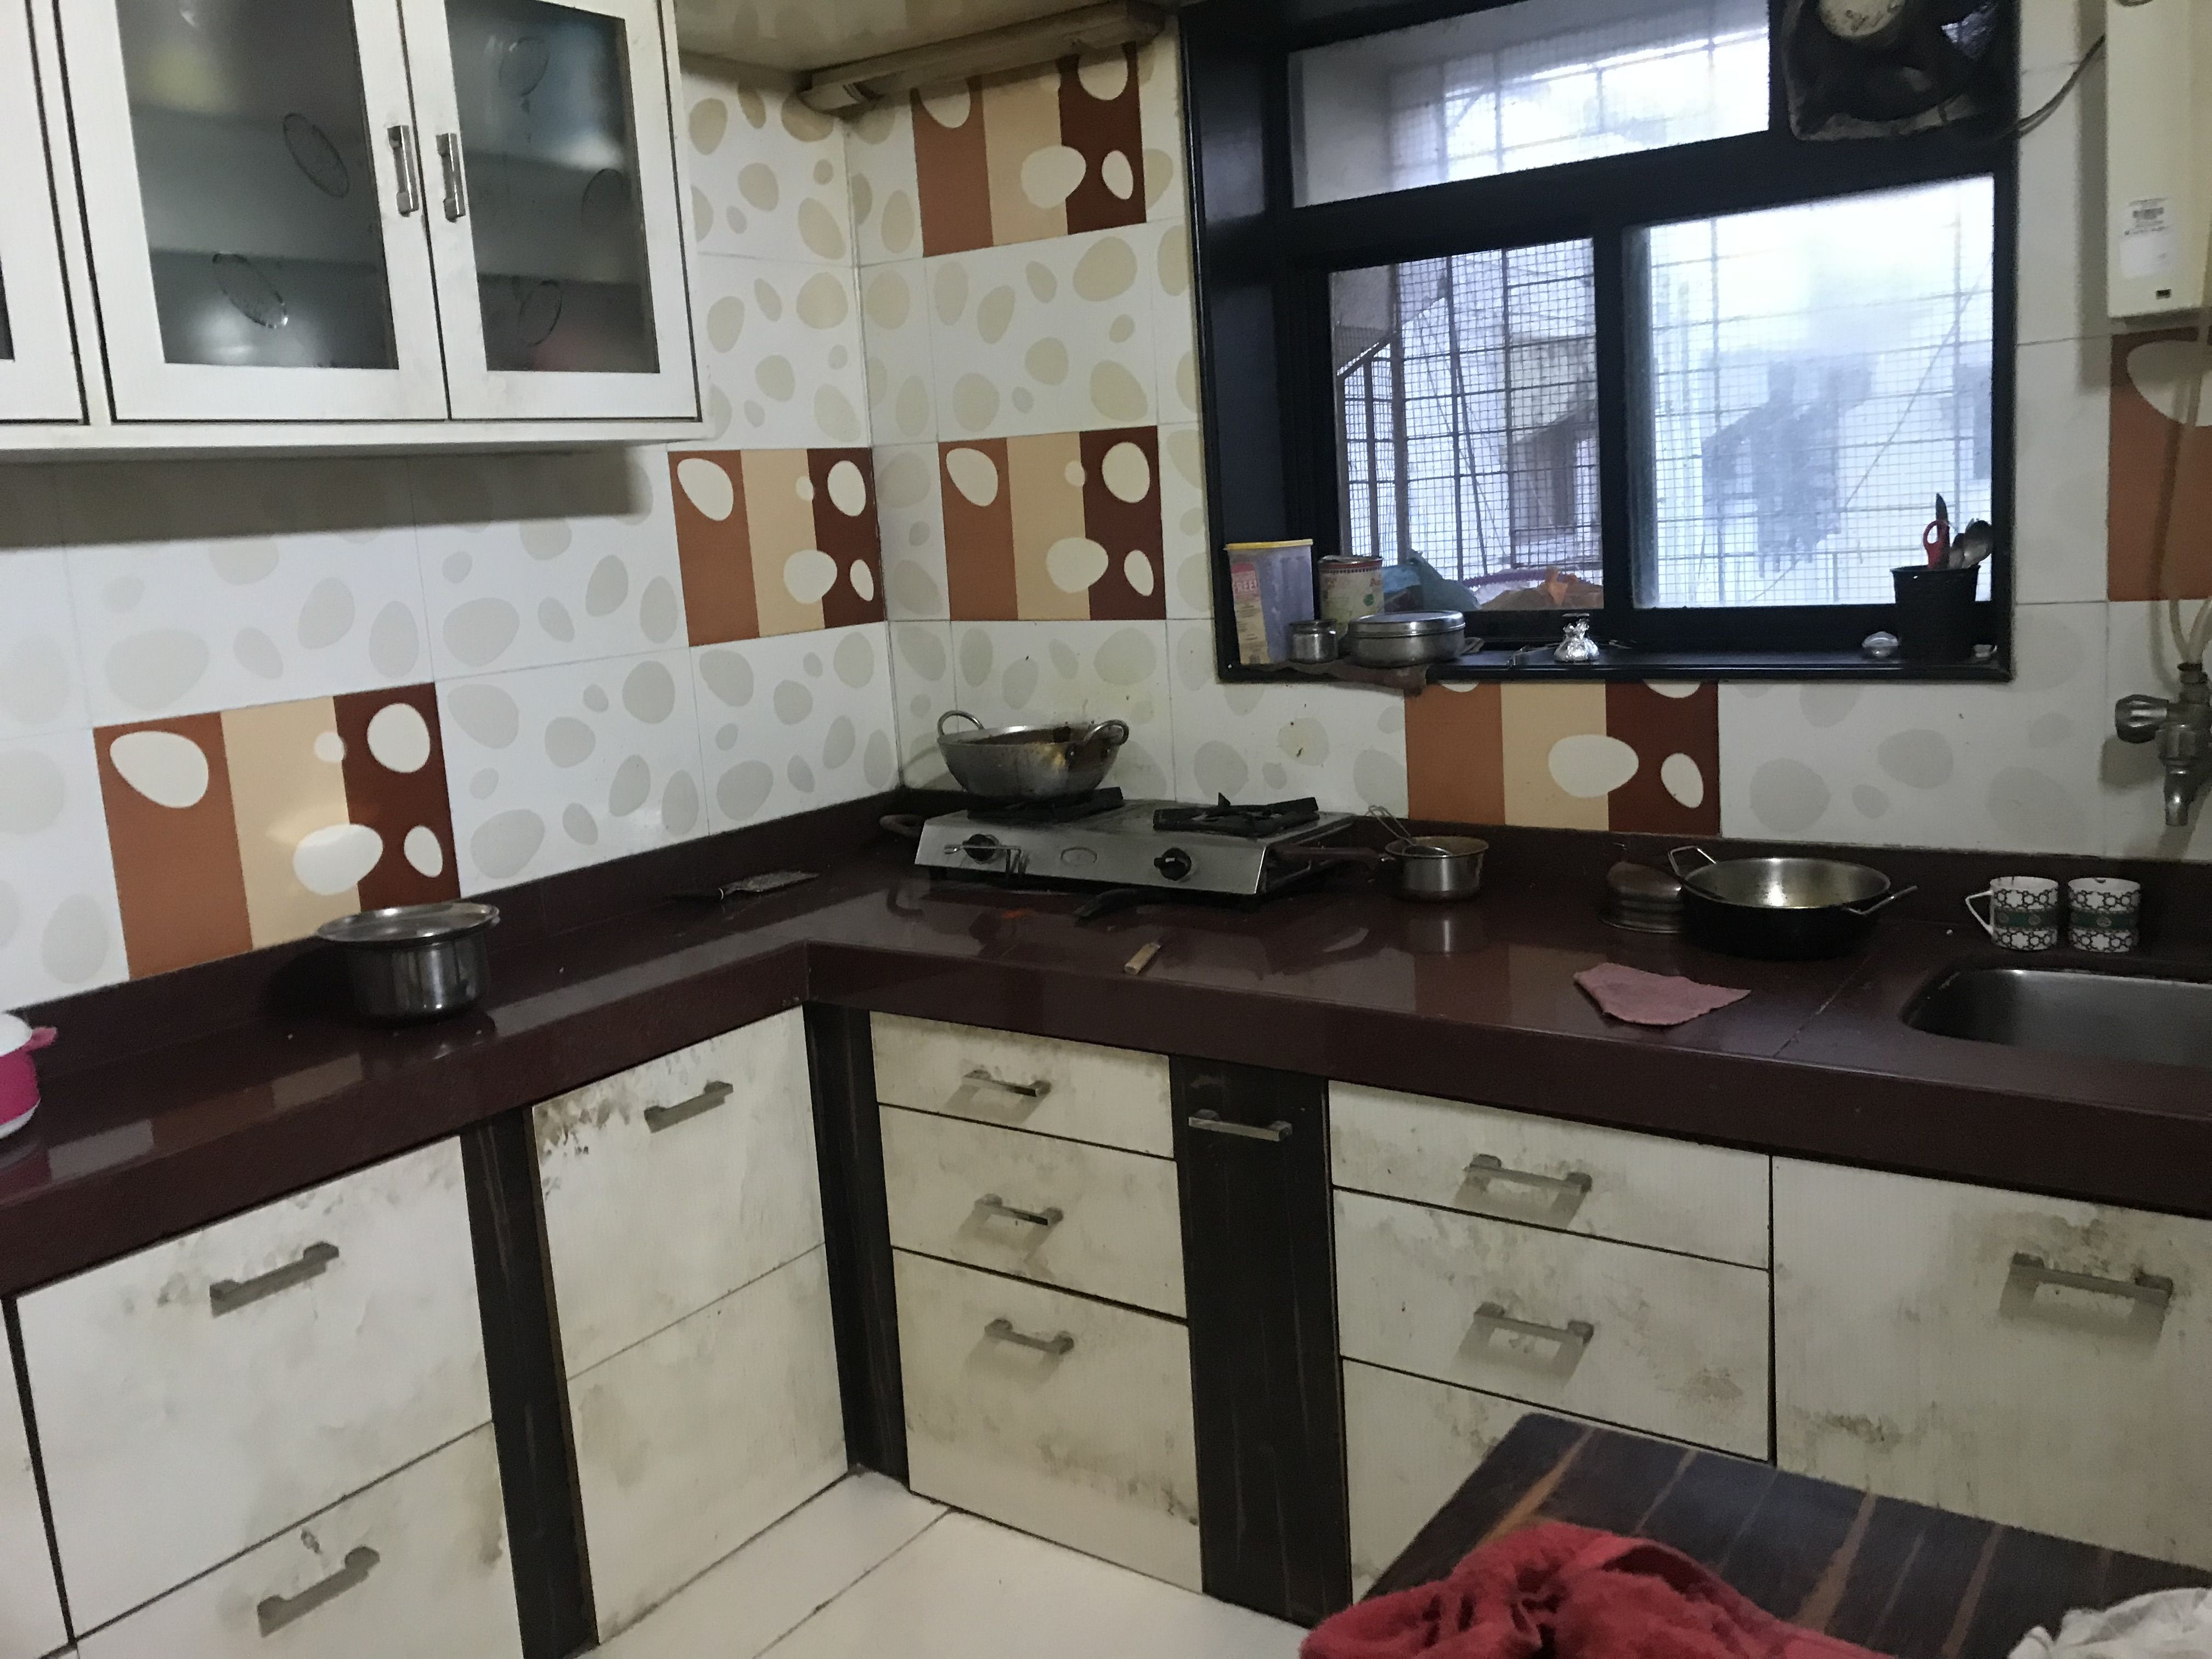 Id00077 2bhk Vile Parle West 12 15 Mins Walk From College 2acs Fridge Washing Machine Oven 1 Double Bed 2 Single Bed Kitchen Cabinets Home Decor